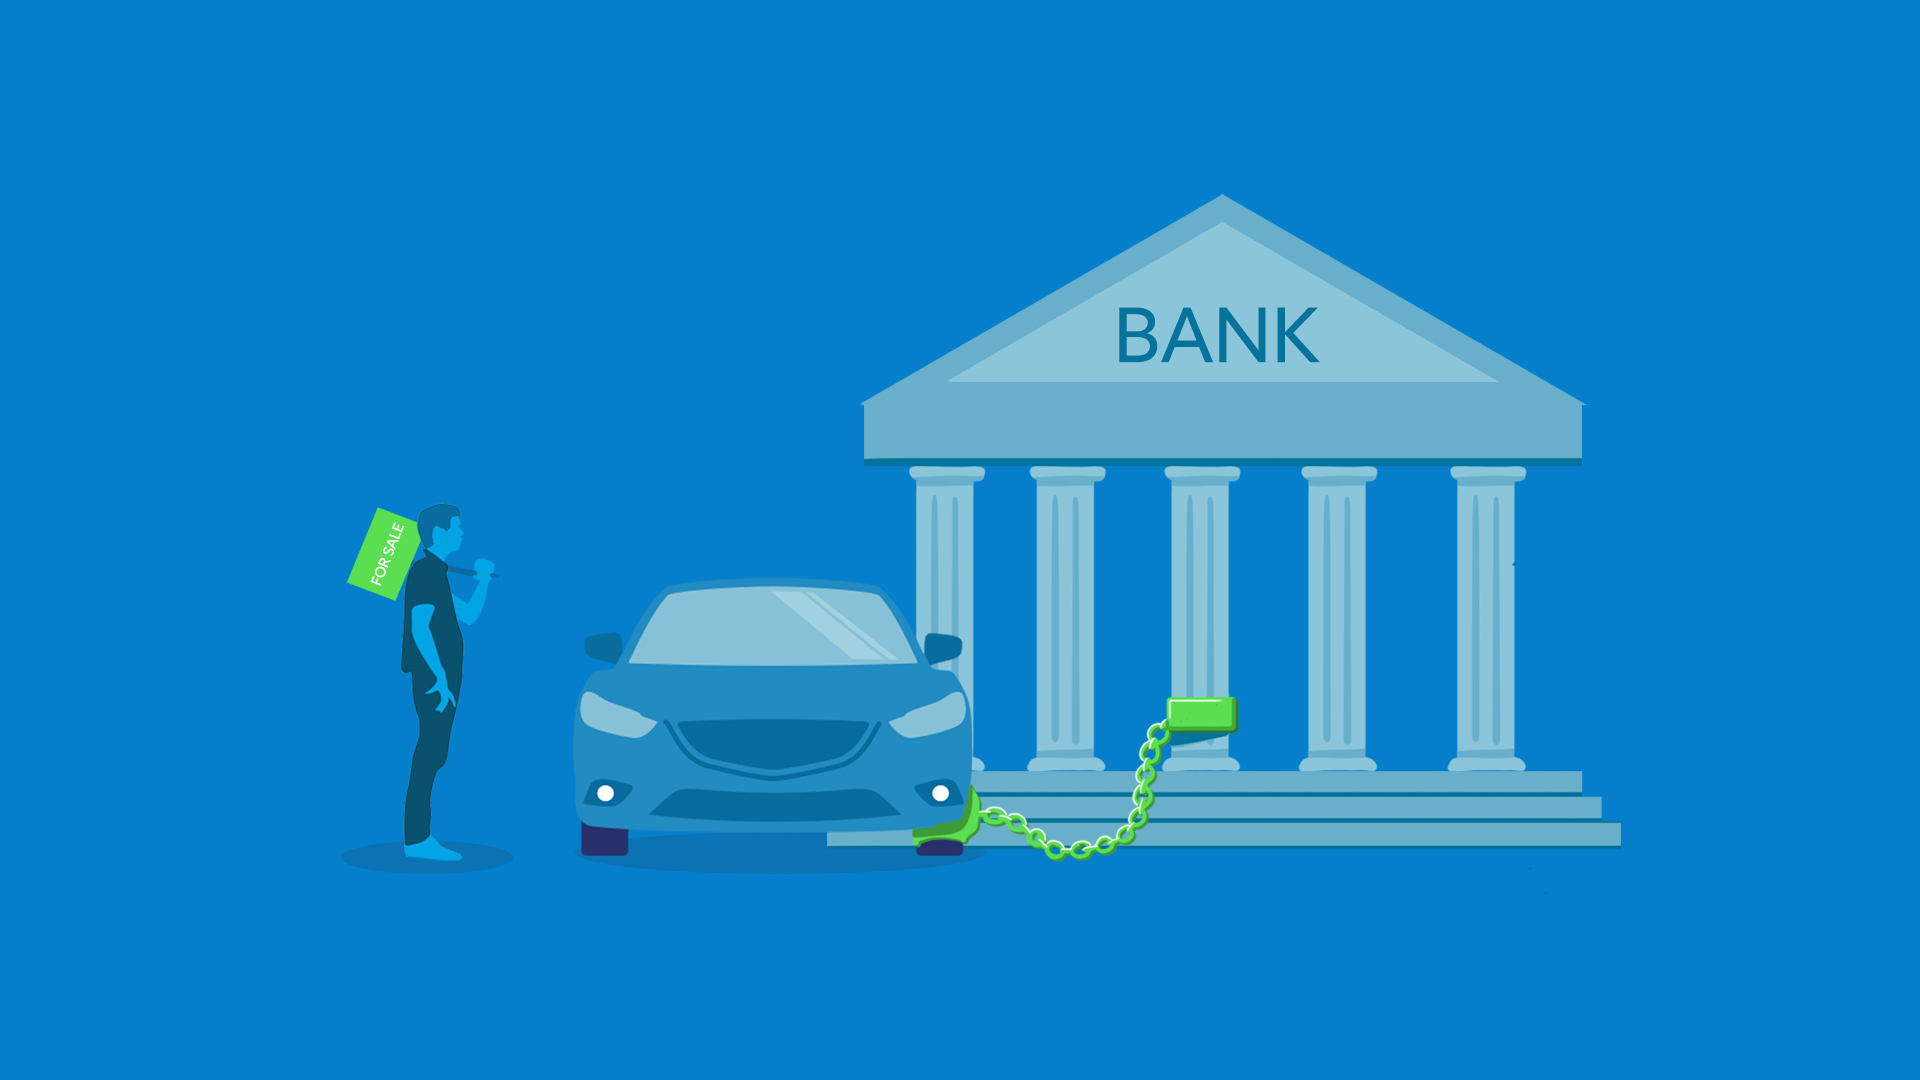 How to Sell My Car Today With Bank Loan?